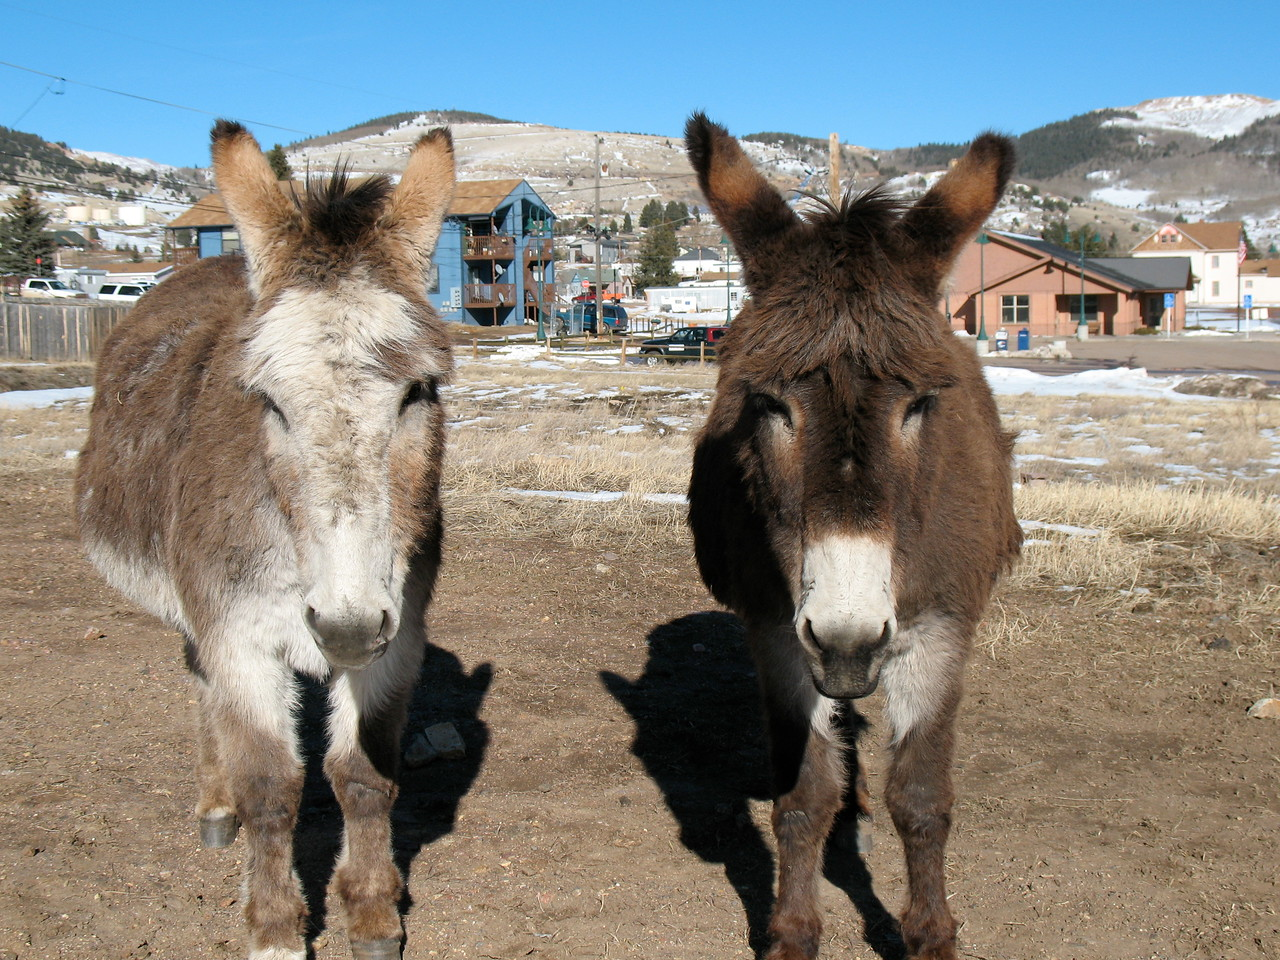 Dynamic Donkey Duo